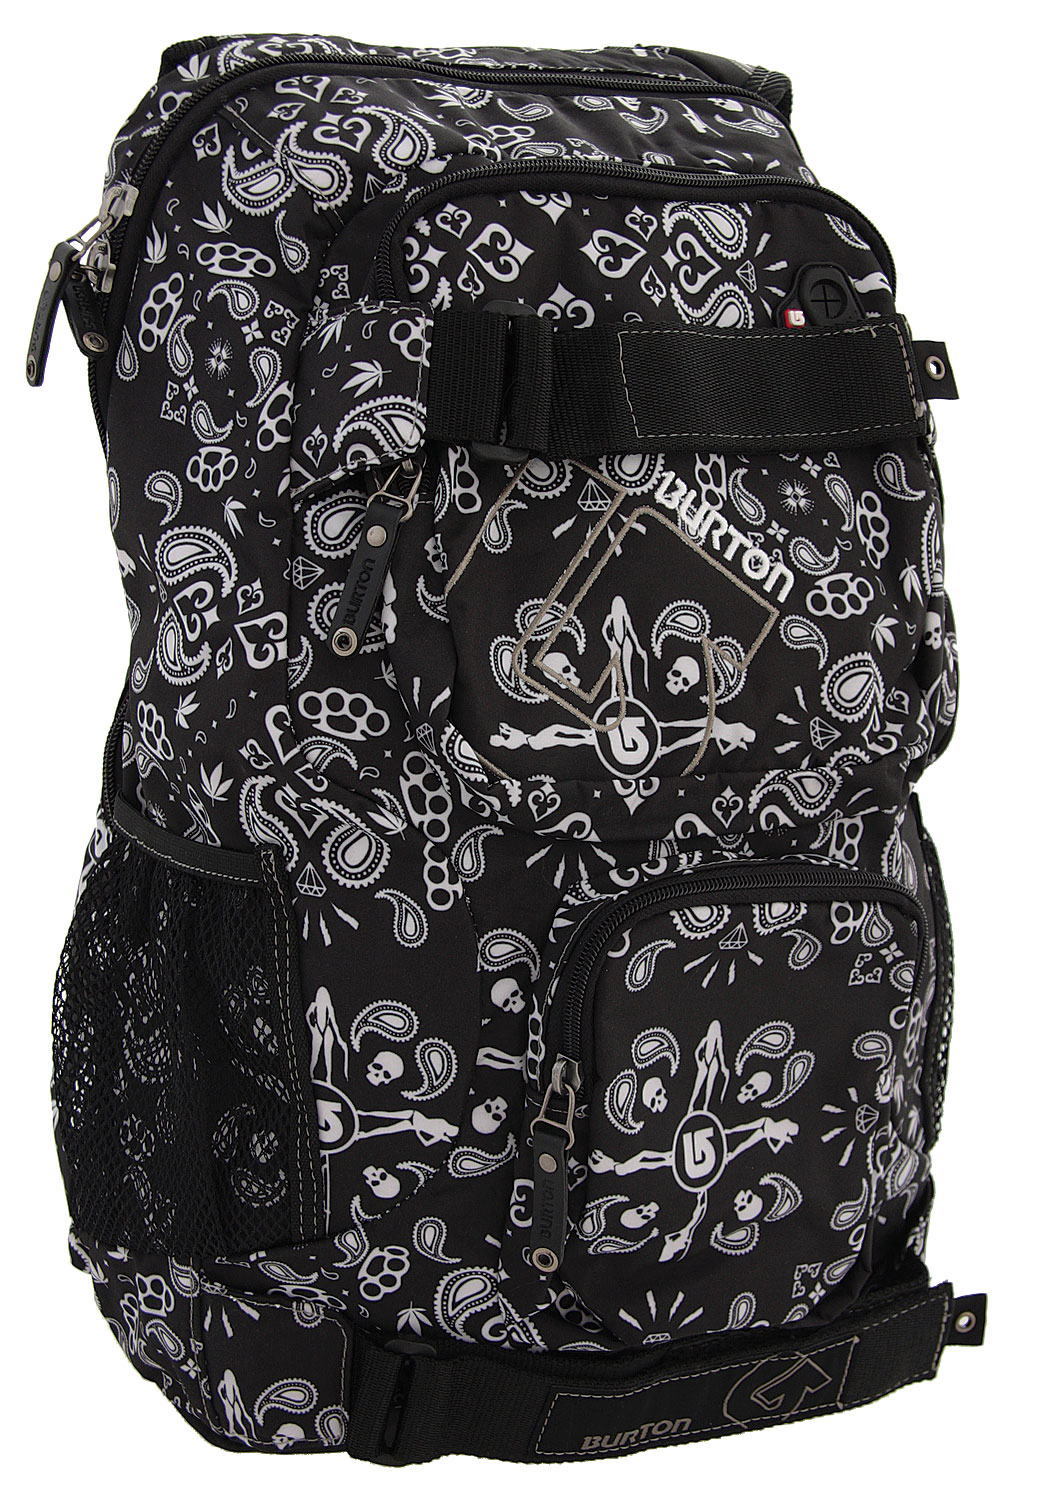 Snowboard If you''re looking for a slick design and varied patterns on your backpack, then the Burton Treble Yell Backpack is up your prairie. With a Saharan desert contrast, this backpack is made for people who enjoy the outdoors. It features interconnected head phone options and a comfortable weight distribution design, which takes out the ache of long term wear. For school kids on the go, it even offers room for a laptop, among other things; making this a good all-around backpack to have at your disposal.Key Features of the Burton Treble Yell Backpack:  17L [17in x 12in x 8in] [43cm x 30cm x 21cm]  Laptop Pocket [Fits Most 12 in. Laptops]  Vertical Skate Carry   Cush Ergonomic Shoulder Harness   Sound Pocket with Headphone Cable Port - $19.95